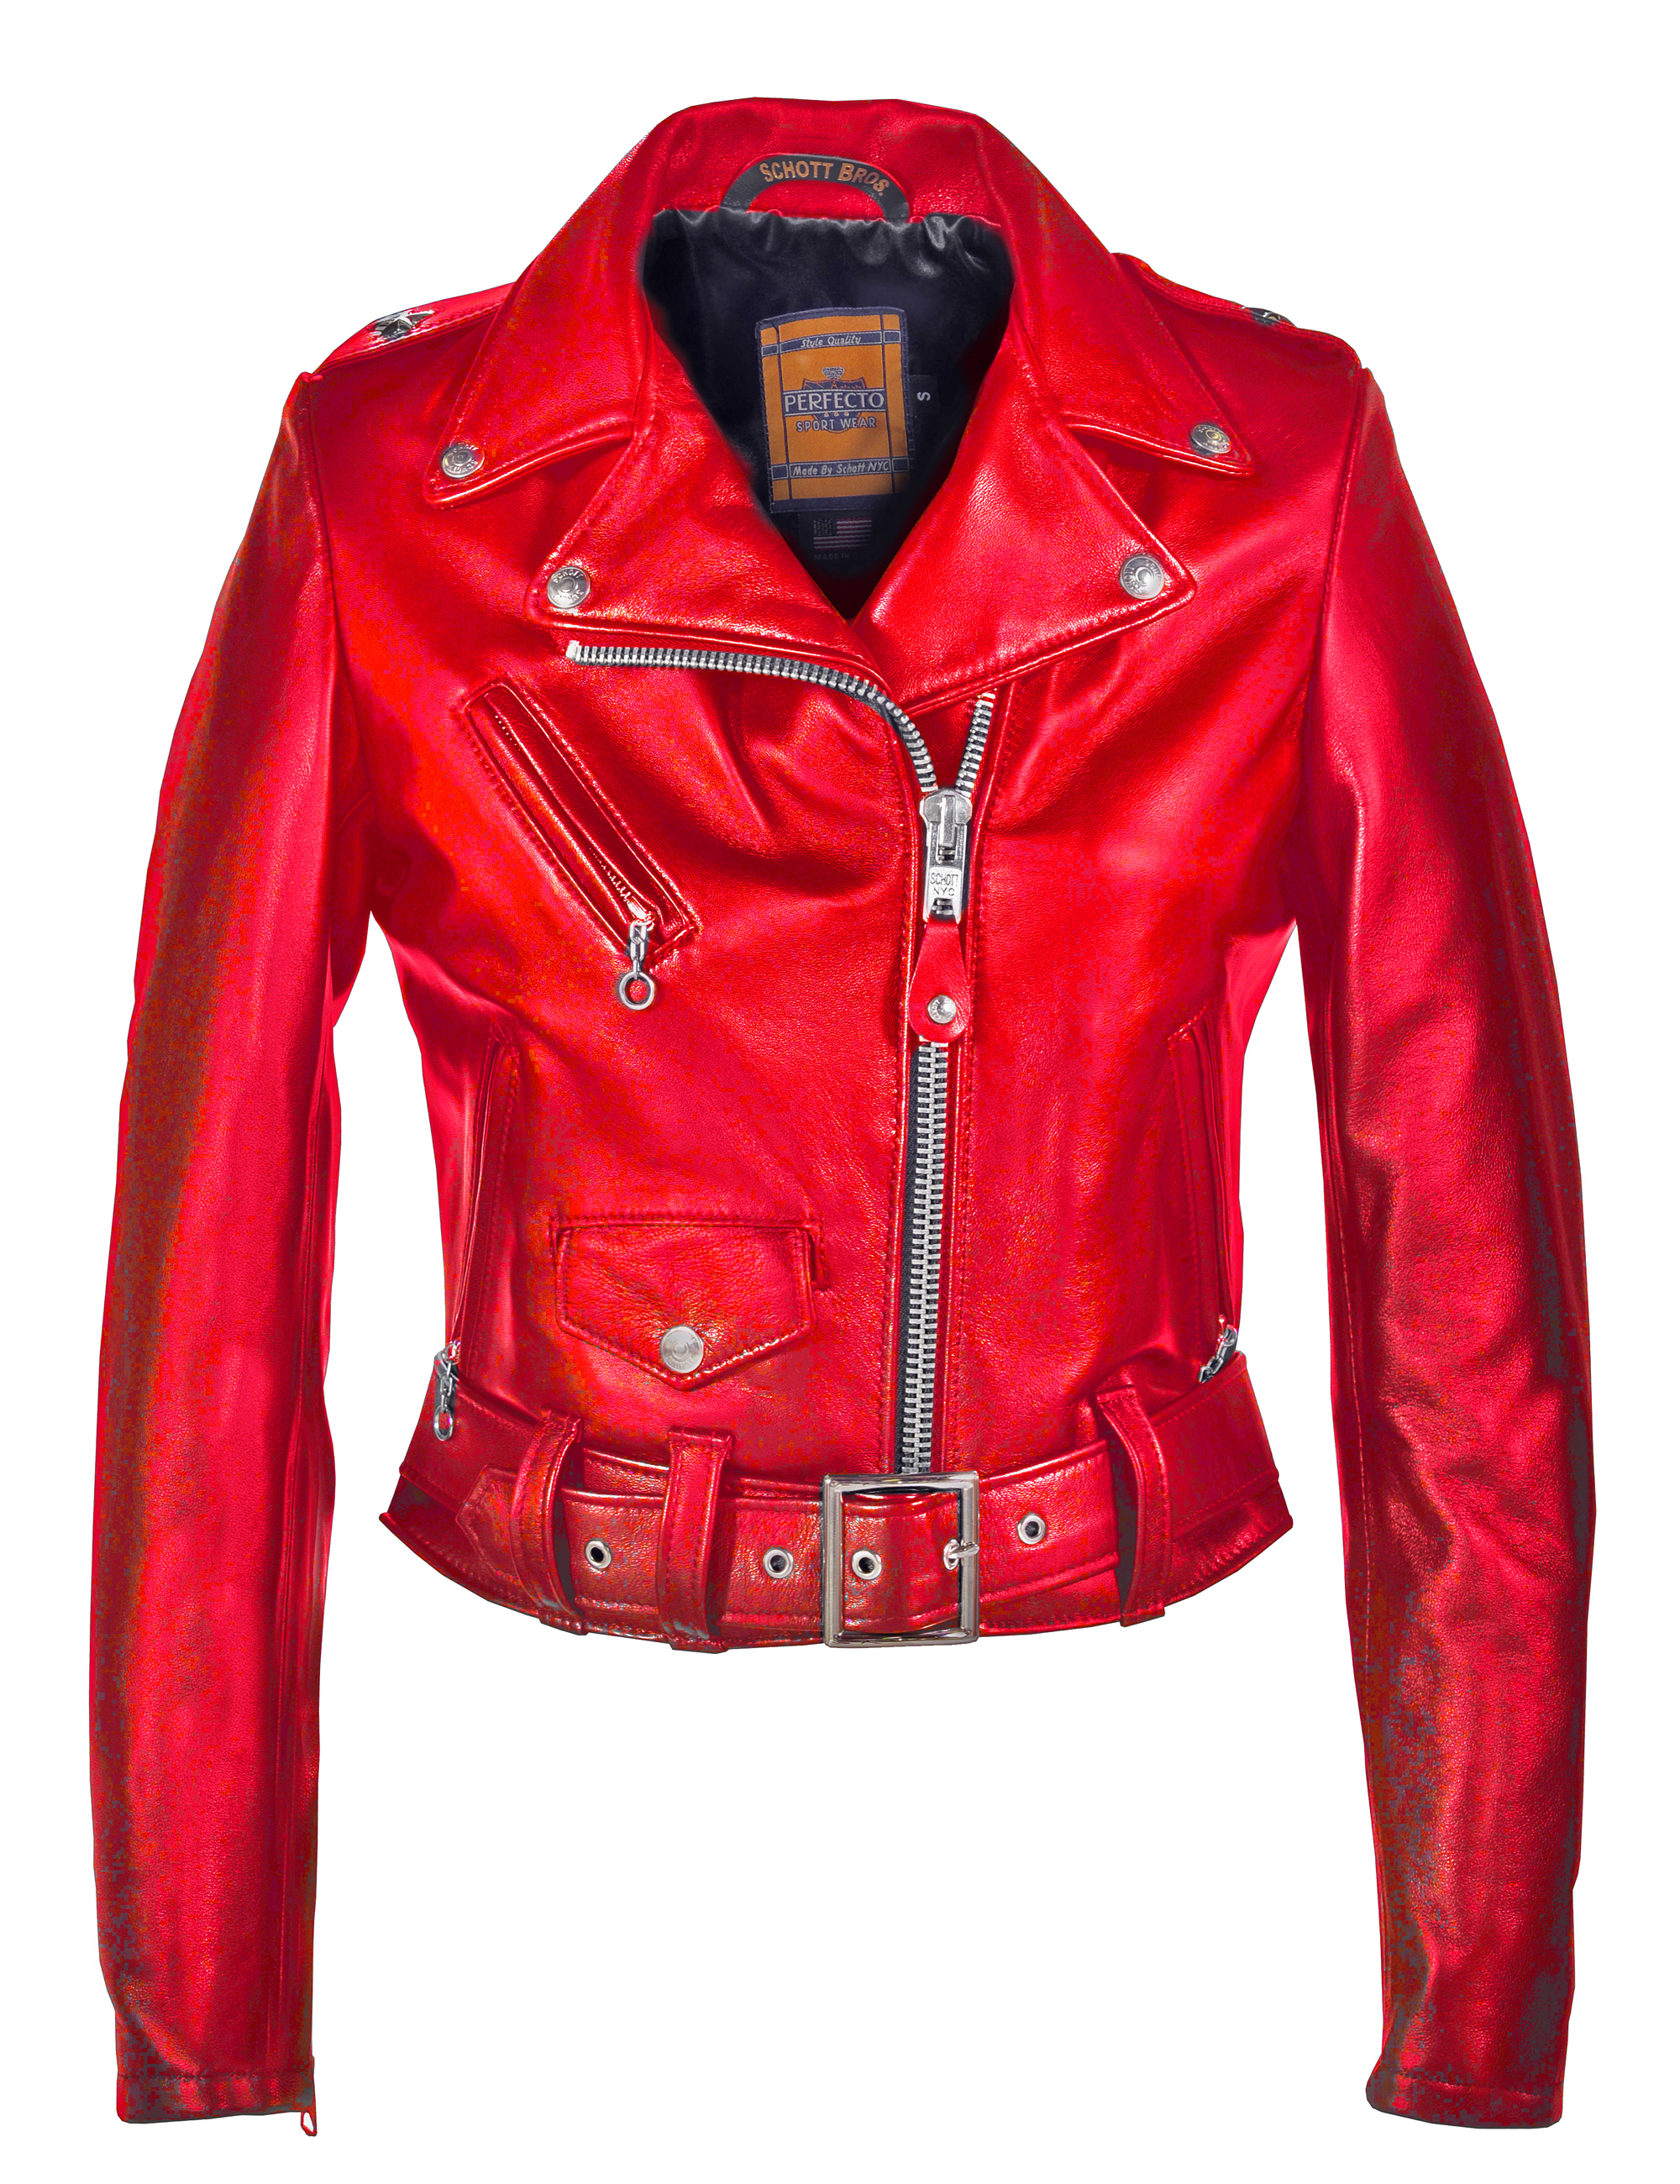 Schott N.Y.C. 218W Women's Cropped Perfecto® in Lambskin Leather Jacket